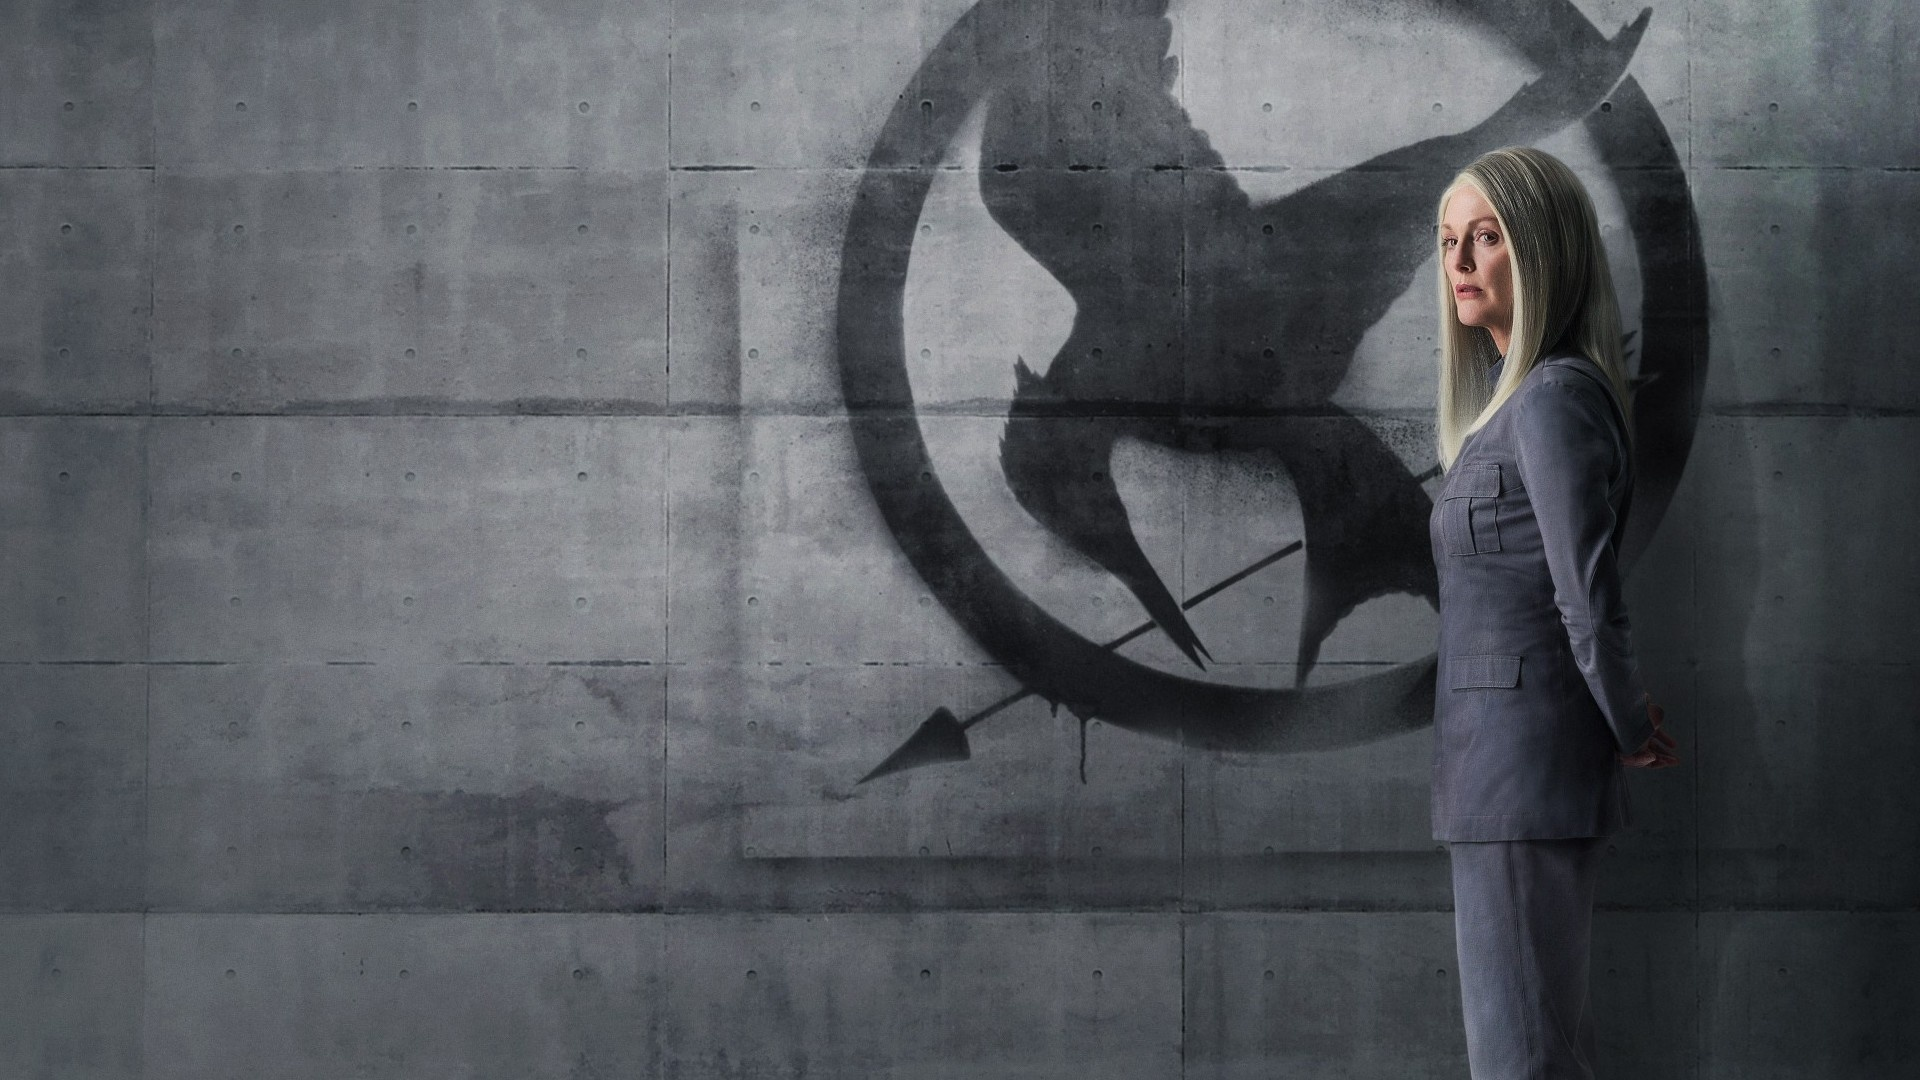 The-Hunger-Games-Mockingjay-Part-1-Julianne-Moore-HD-Wallpaper